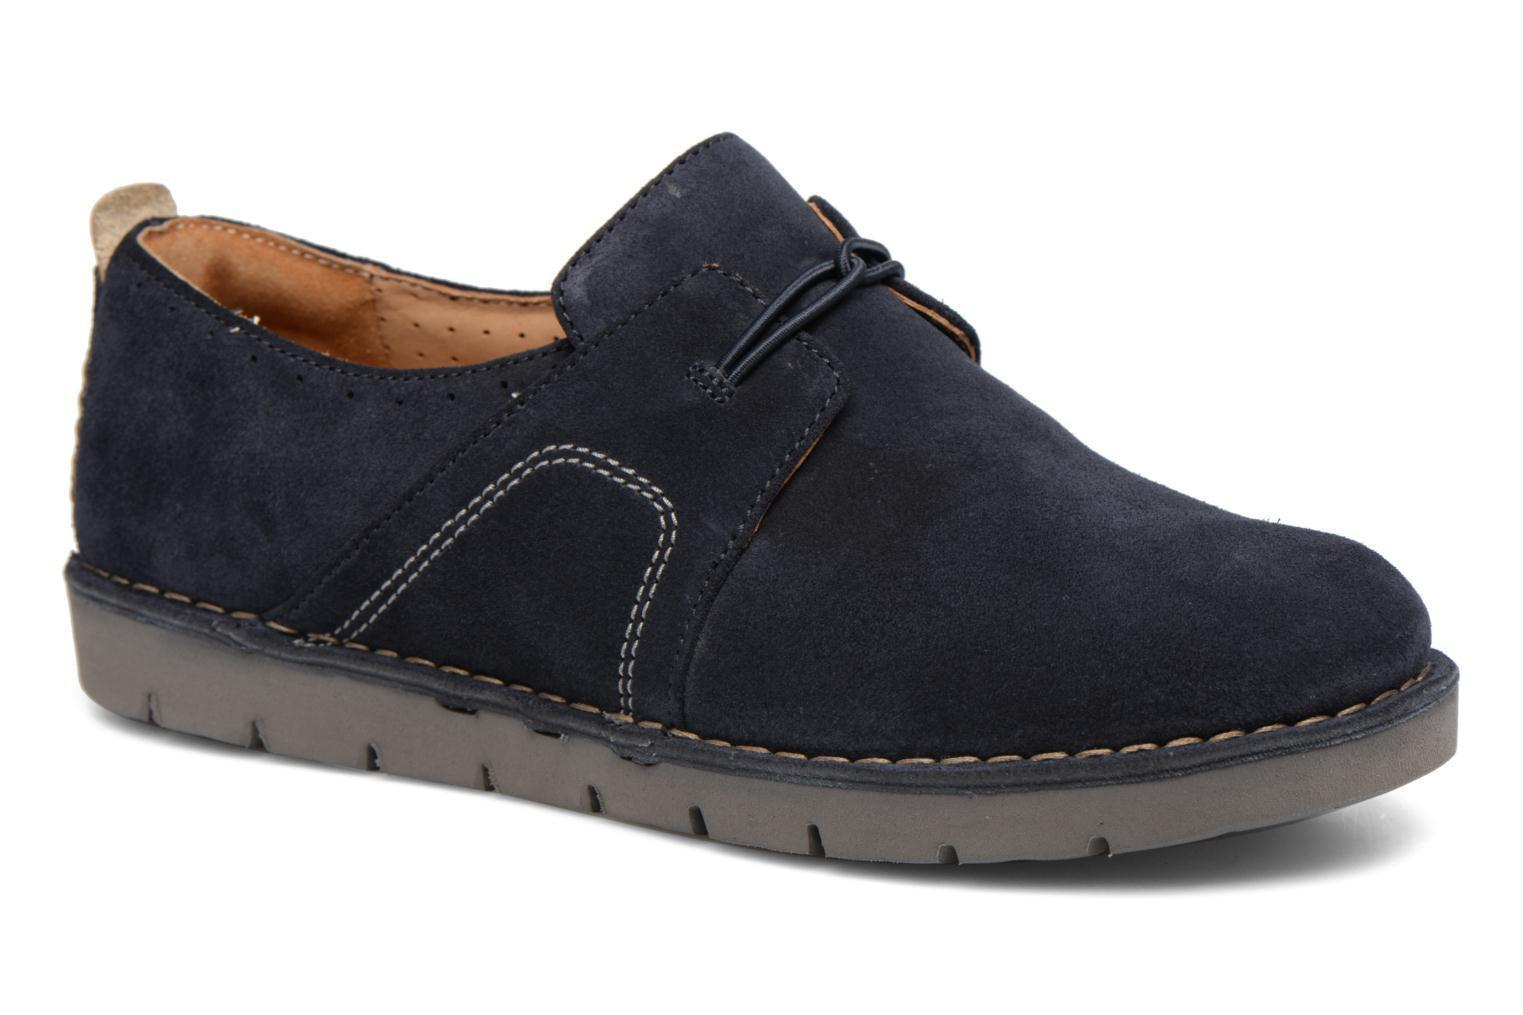 Clarks Clarks Clarks UN AVA Navy Rounded toe Lace up Schuhes UK 8 (D FIT) EU 42 LG077 BB 10 6fc827